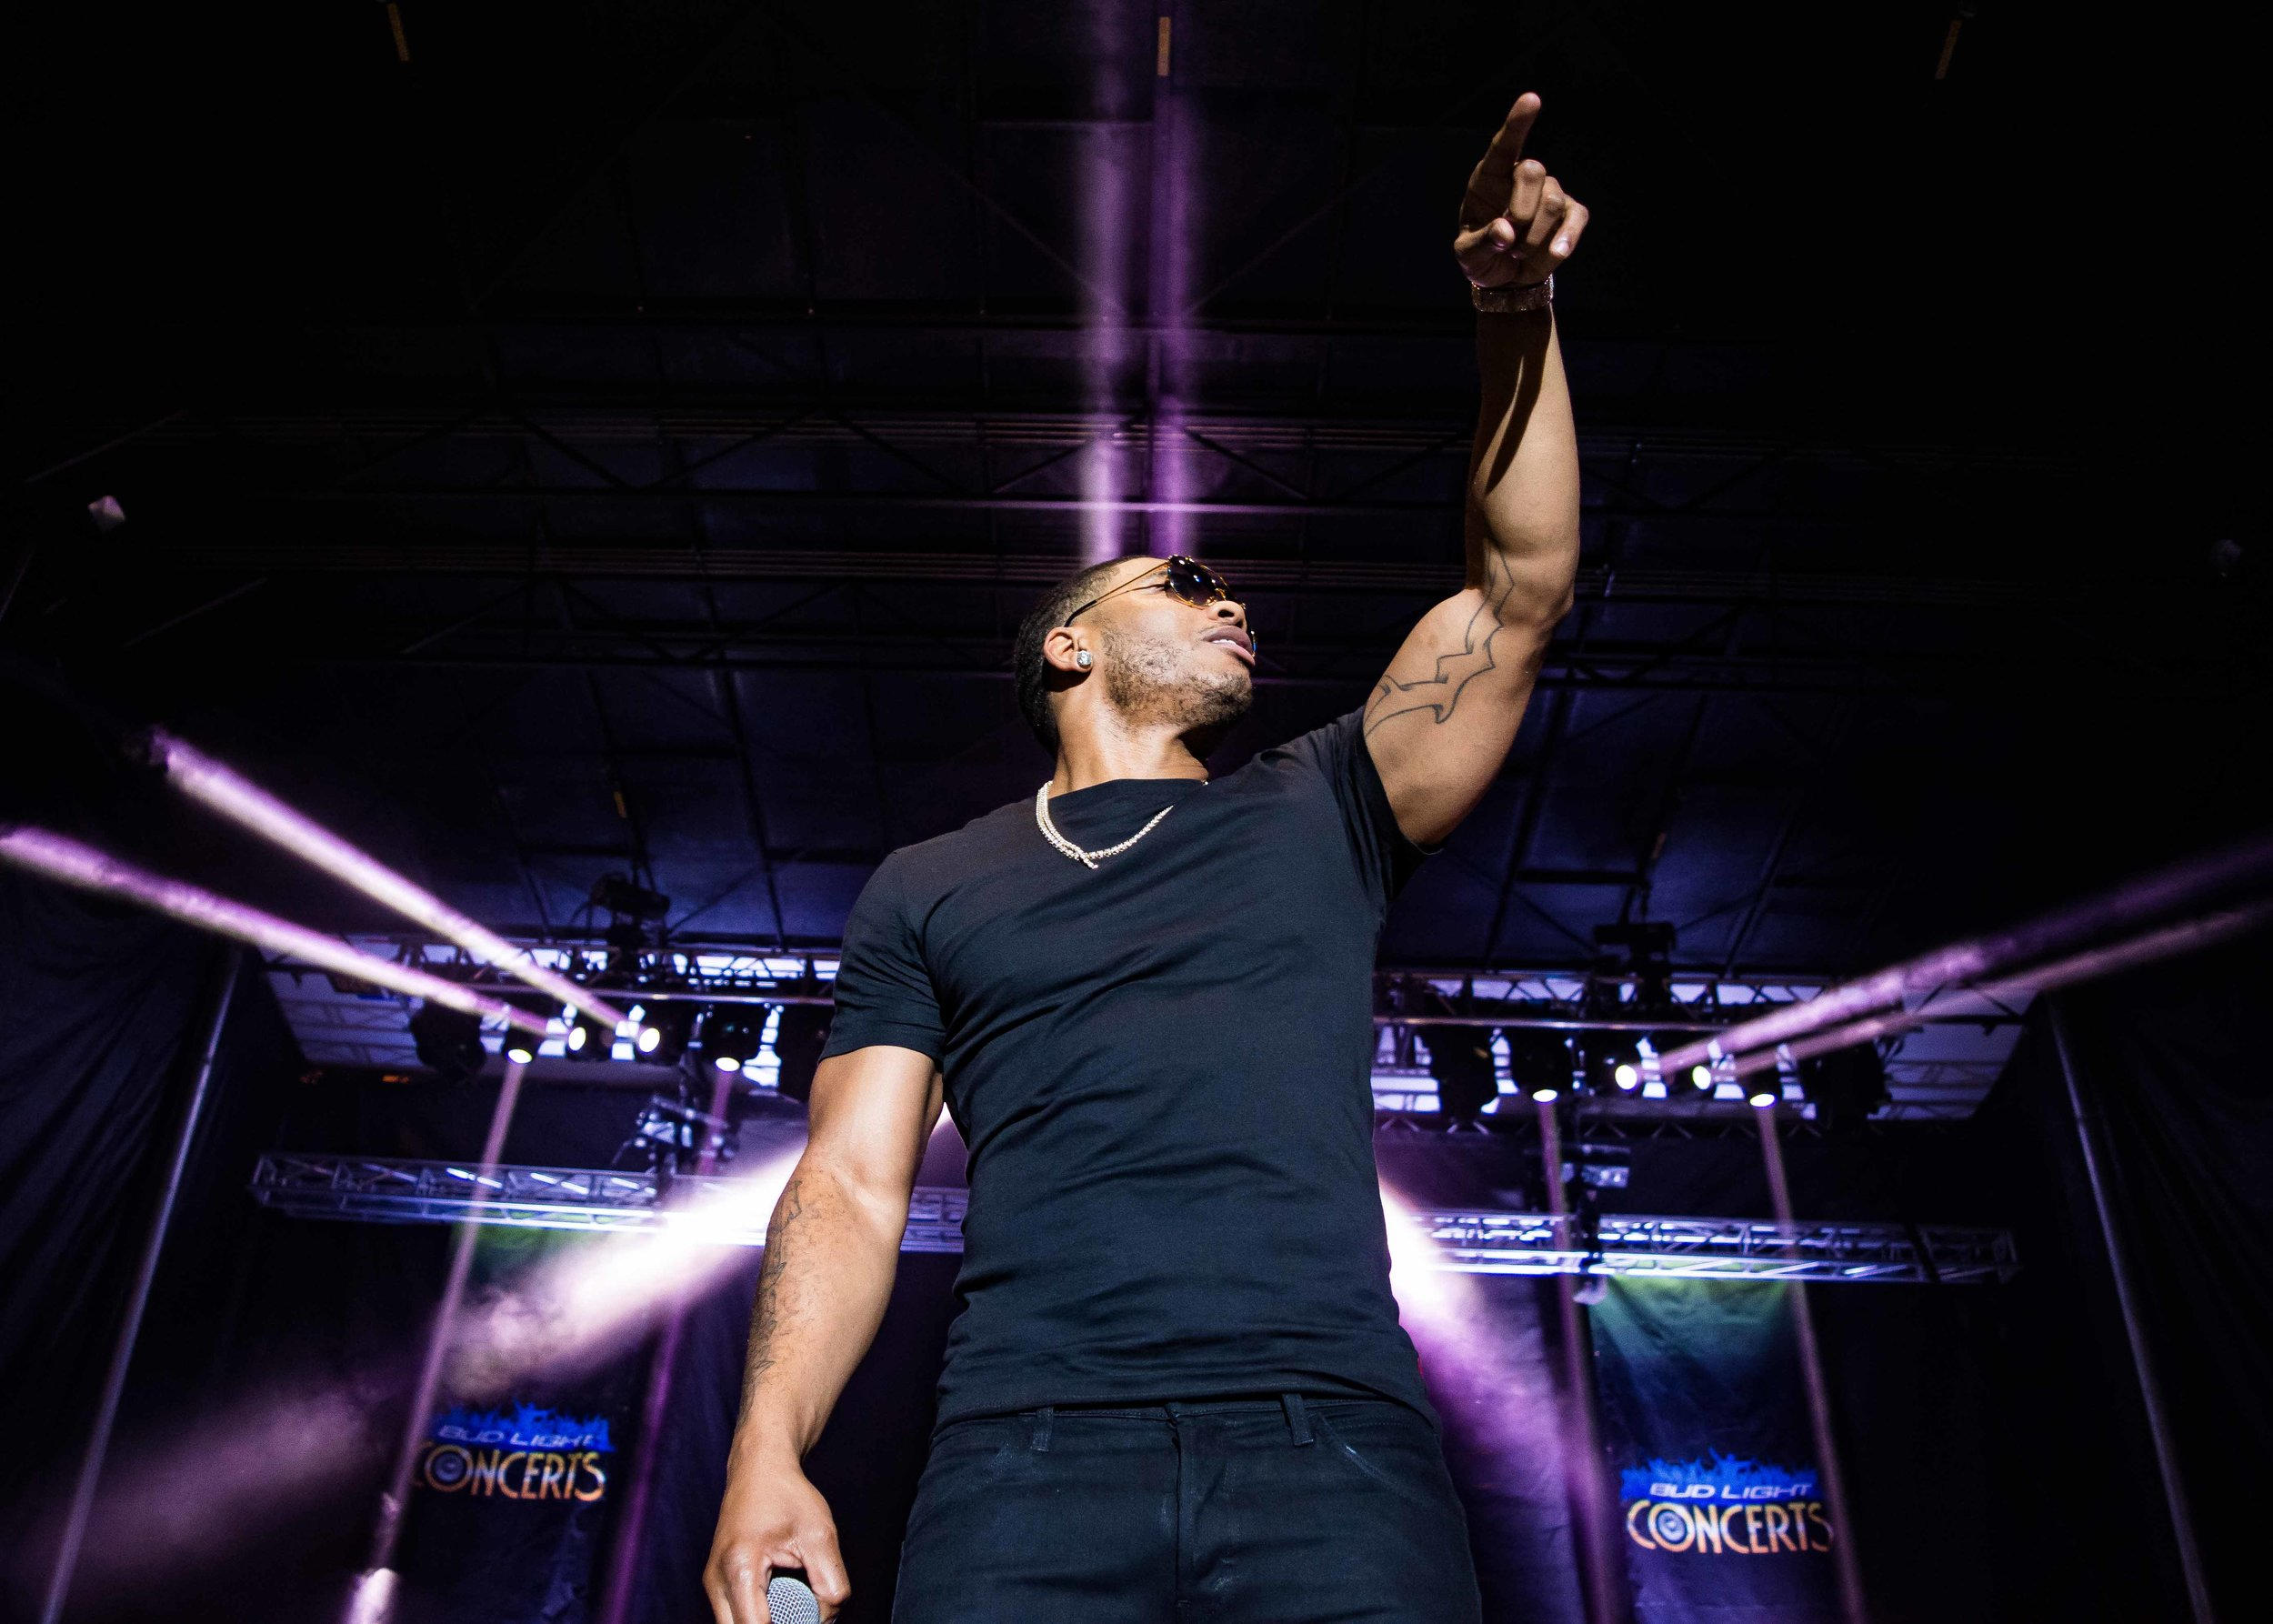 Nelly performed for longer than his contract stated, giving attendees more to hear than originally planned. (© Mike Rundle, 2017)